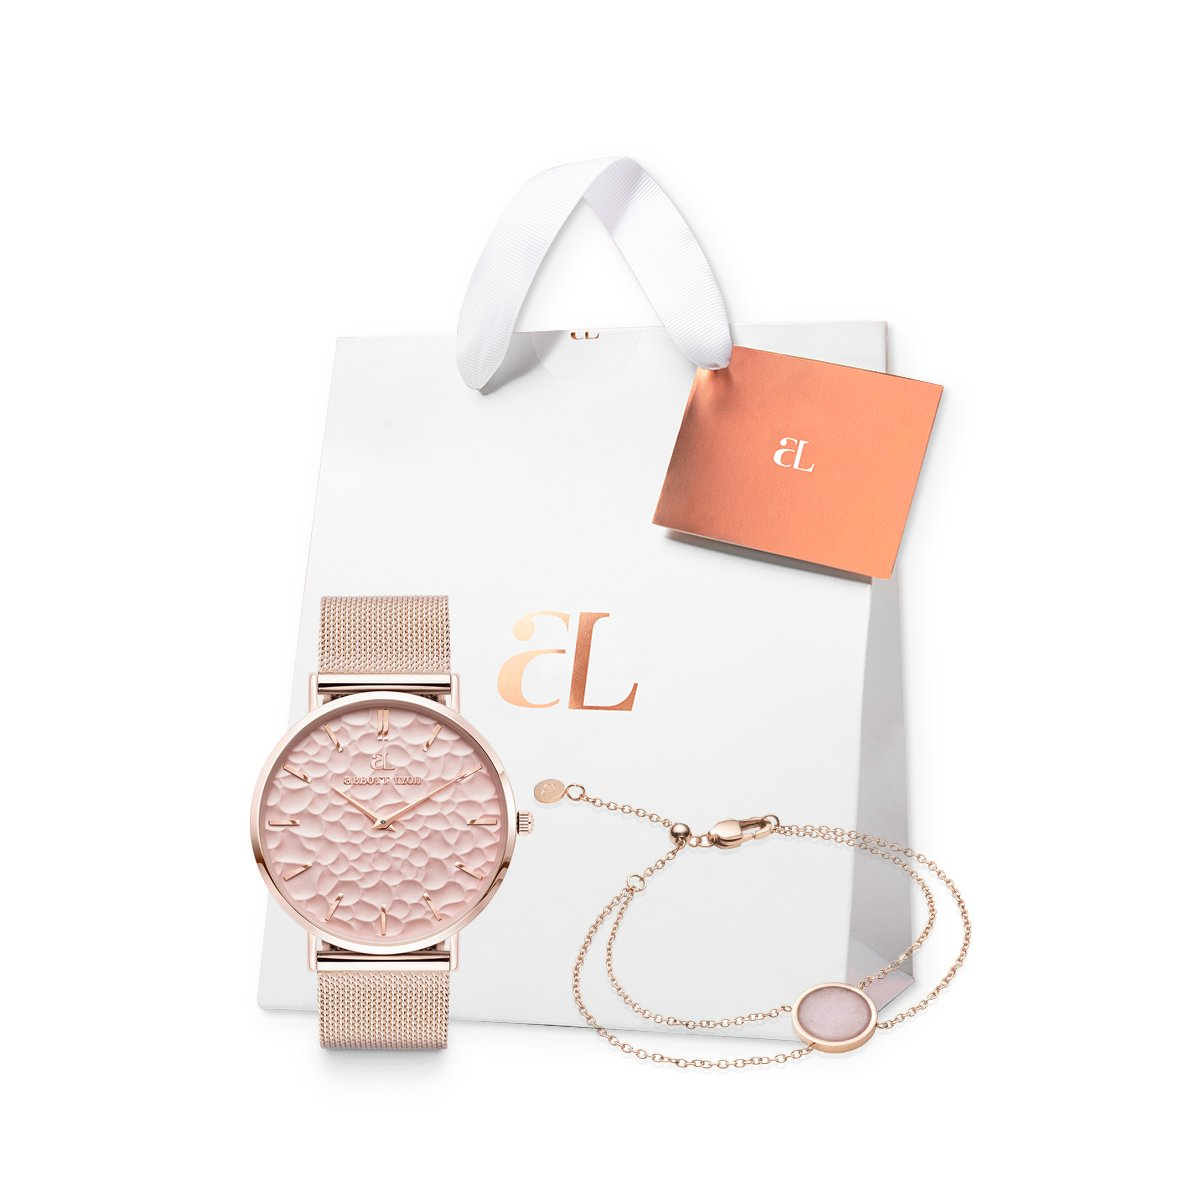 Blush Chain La Ponche 40 Eclipse Gift Set